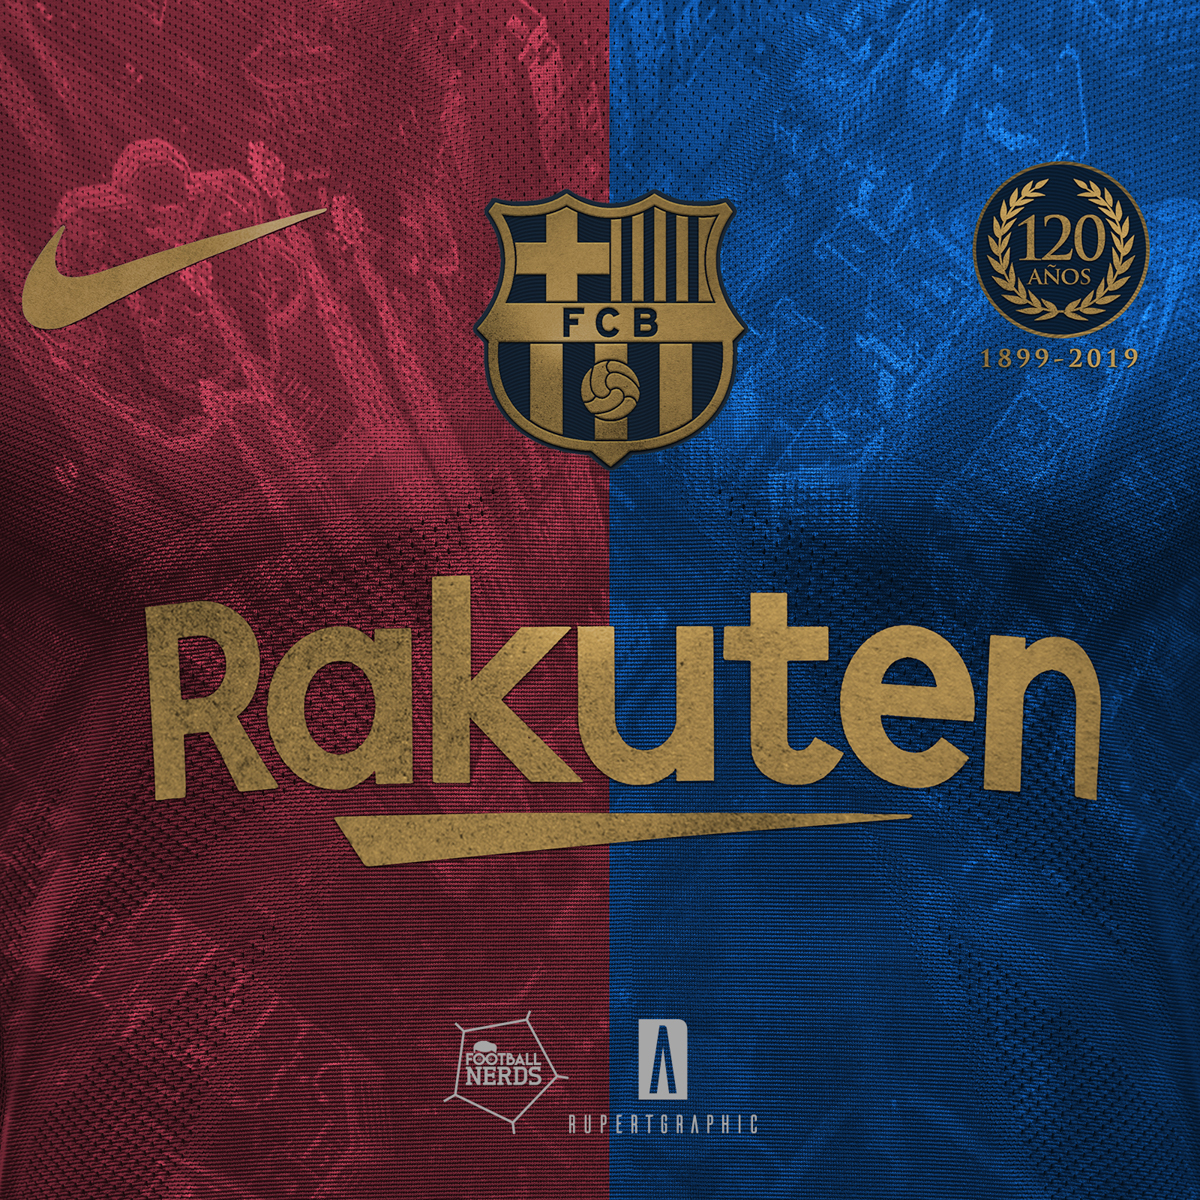 Concept Kit Barcellona 2018 2019